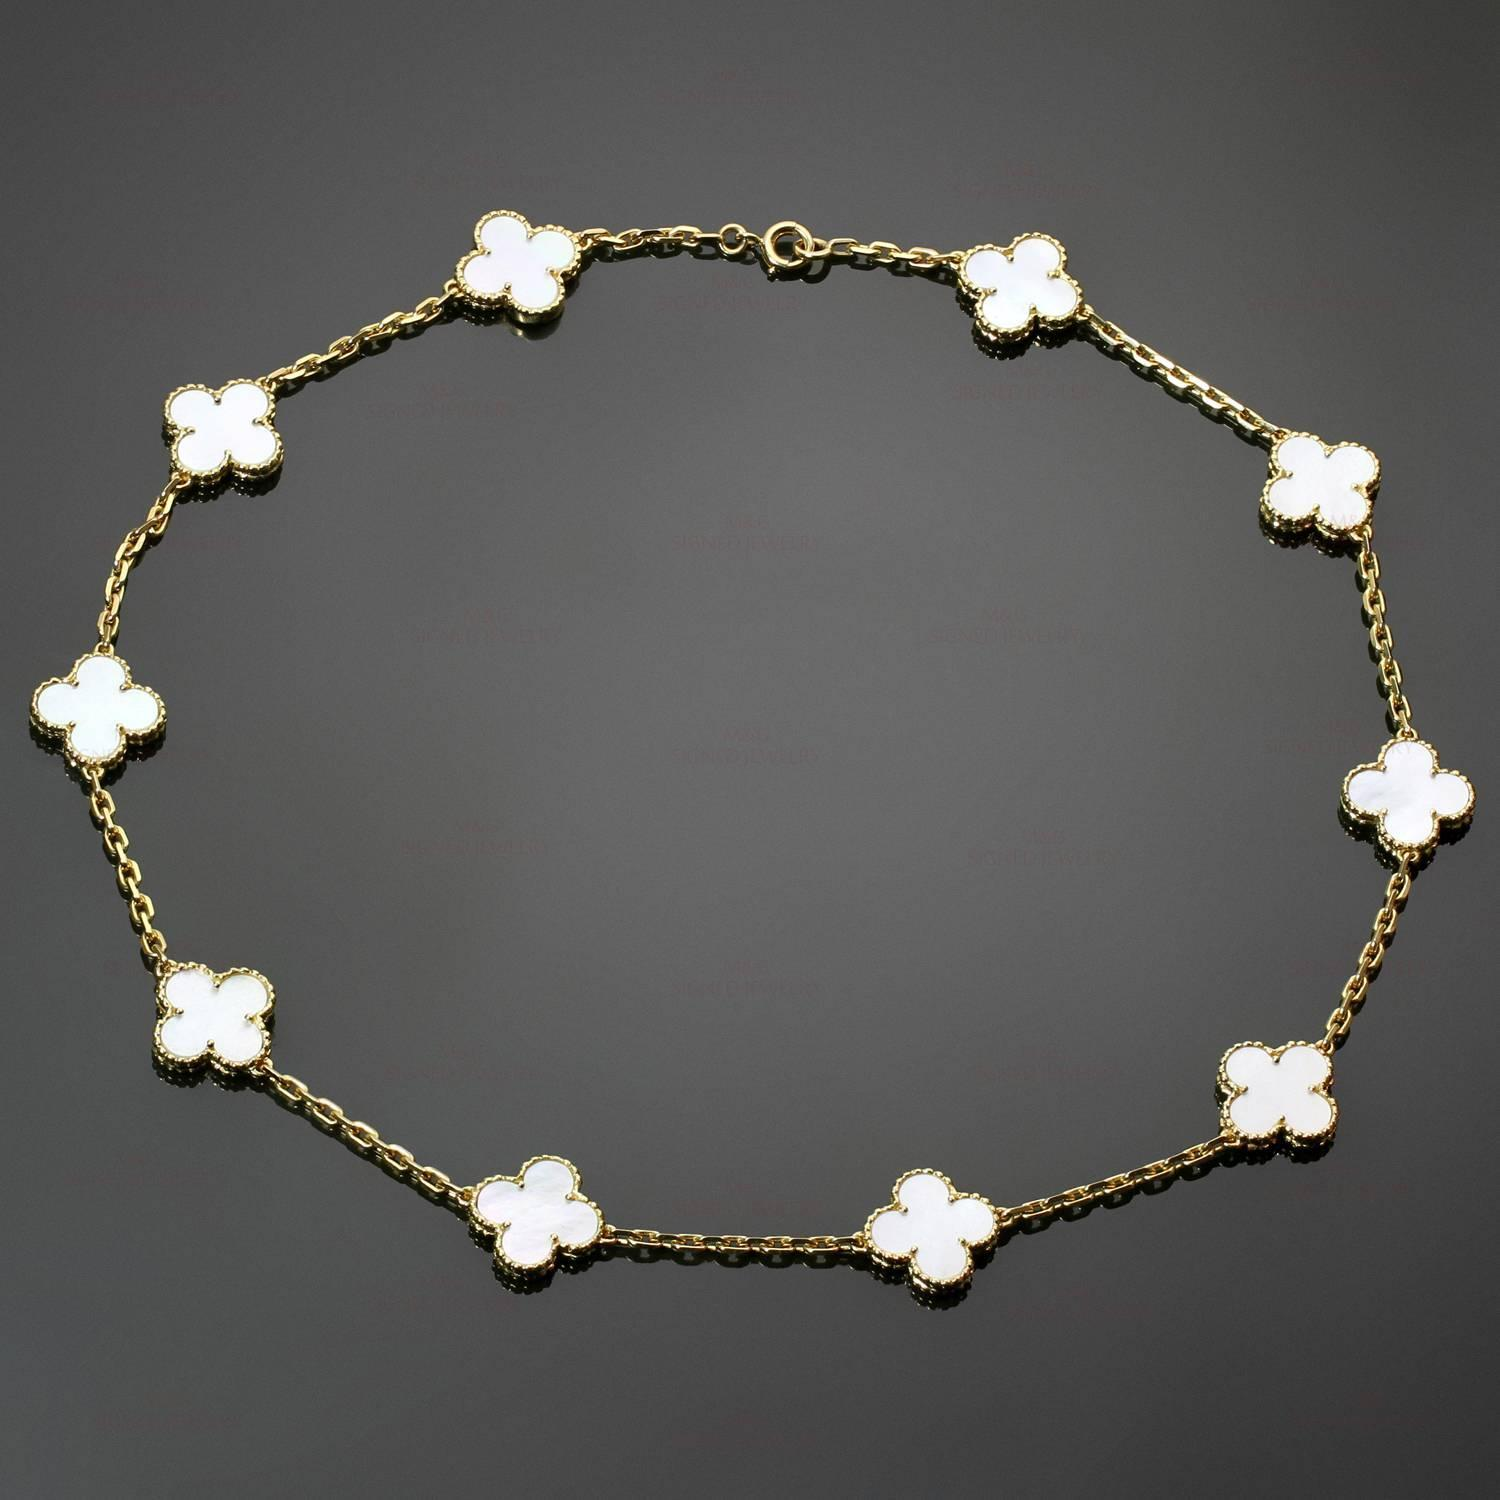 Van Cleef And Arpels Mother Of Pearl Necklace: Van Cleef And Arpels Vintage Alhambra 10-Motif Mother-of